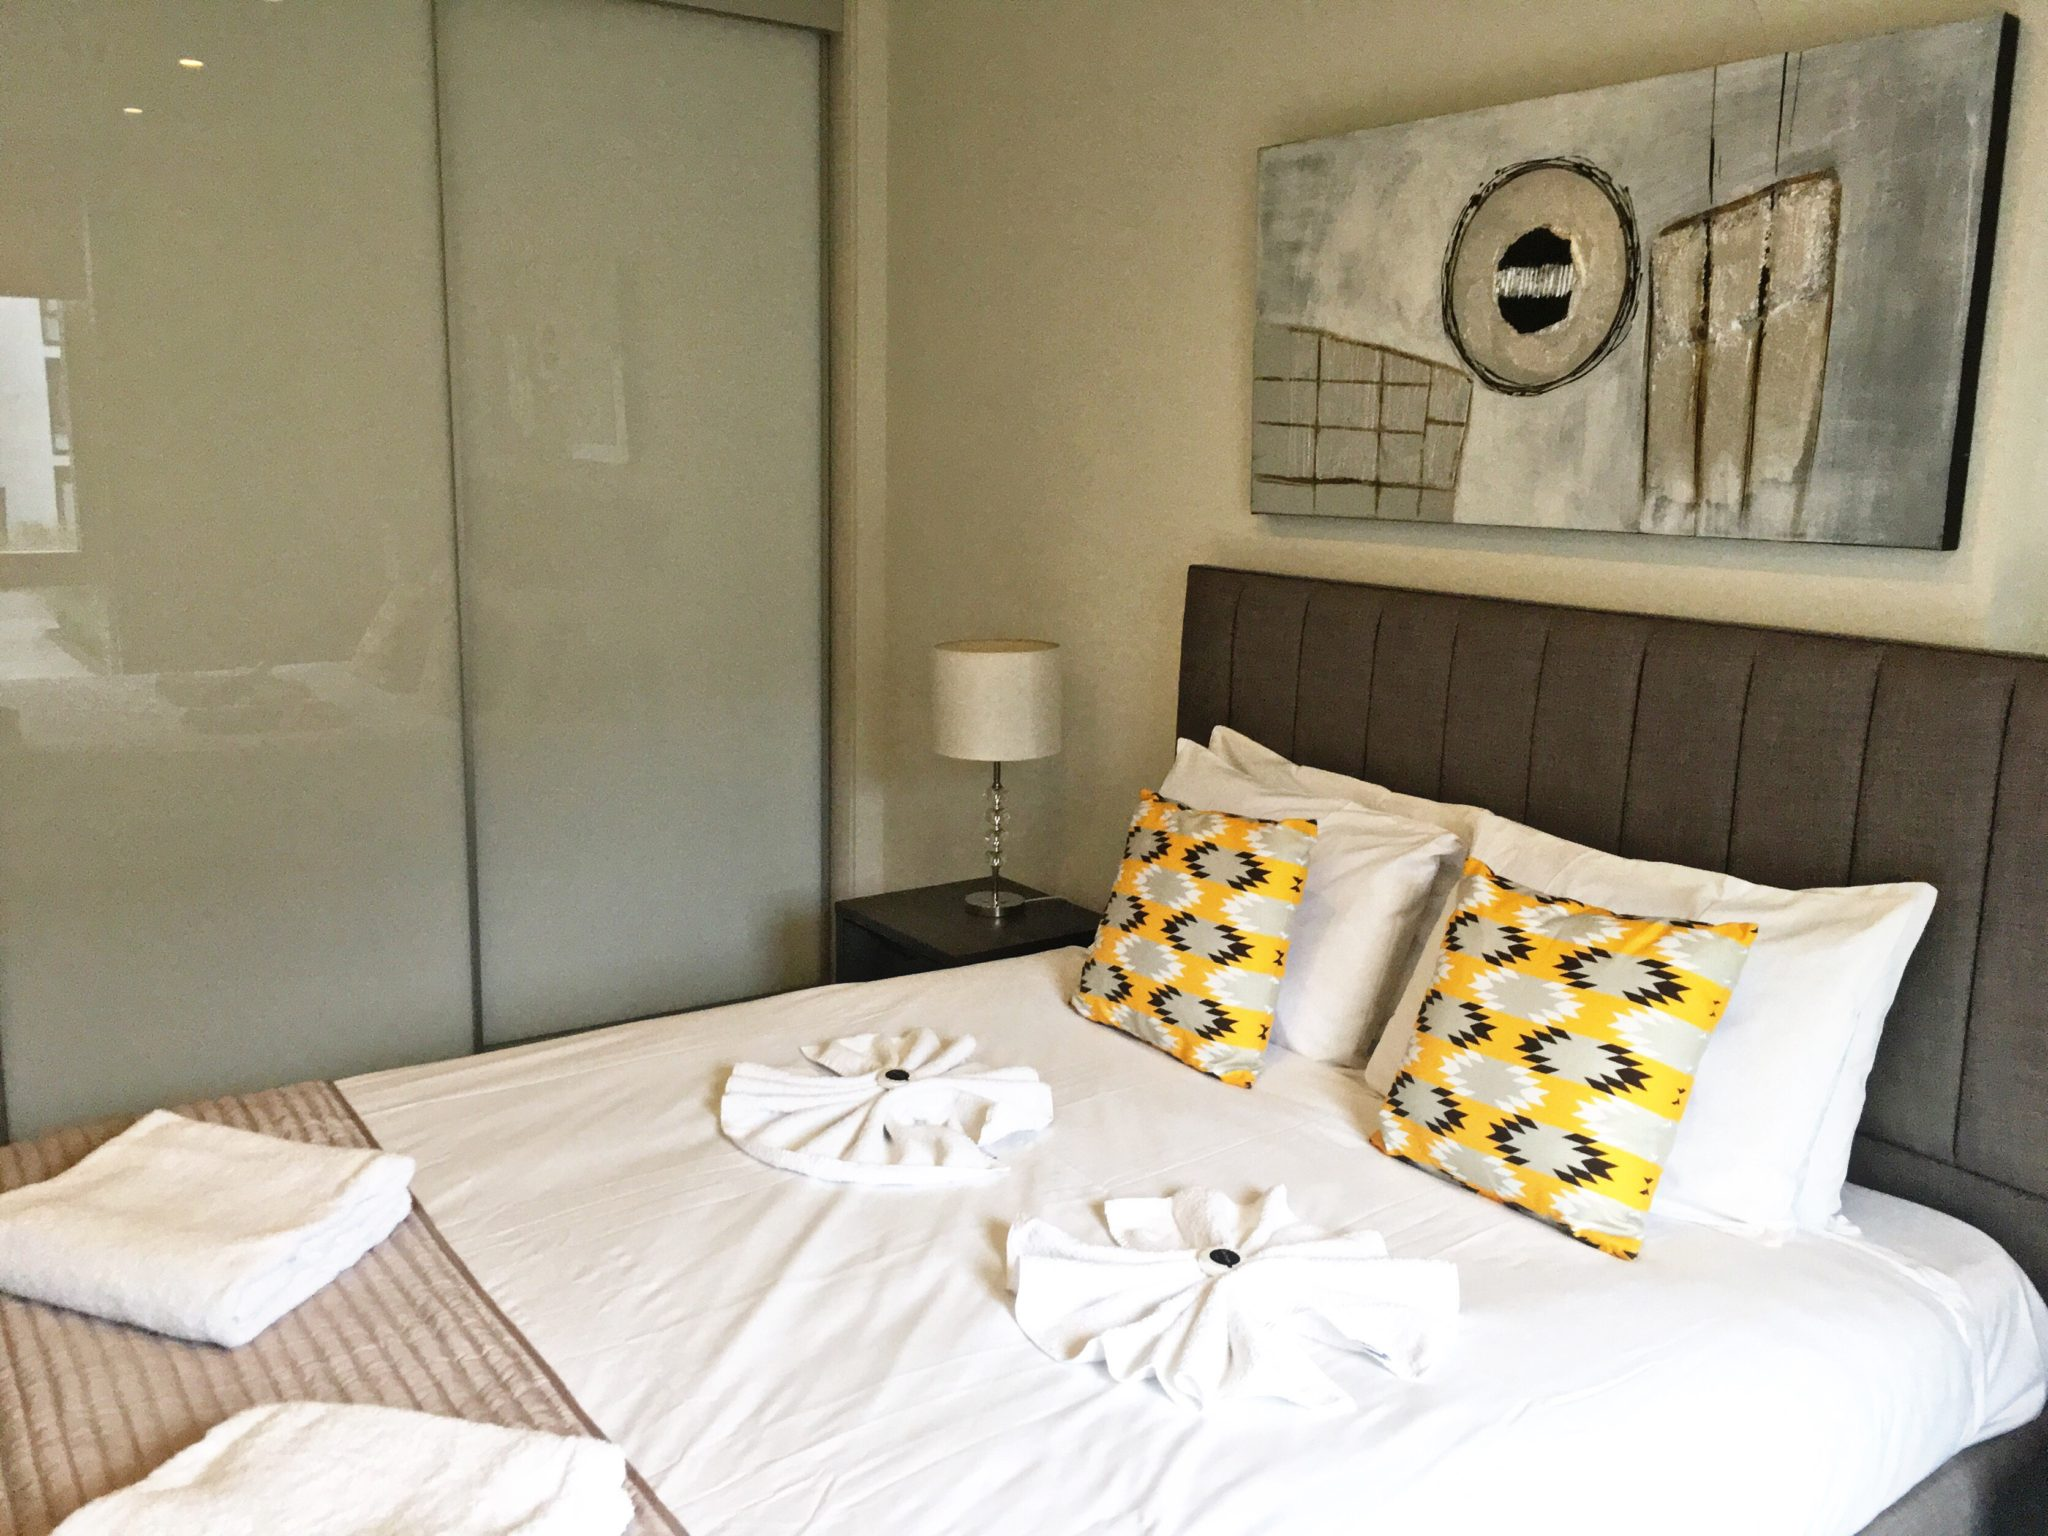 Clerkenwell-Short-Stay-Apartments-London|-Stylish-&-cheap-Clerkenwell-Apartments-|-Free-Wi-Fi-|-Lift-|-Private-Balcony-|-Urban-Stay